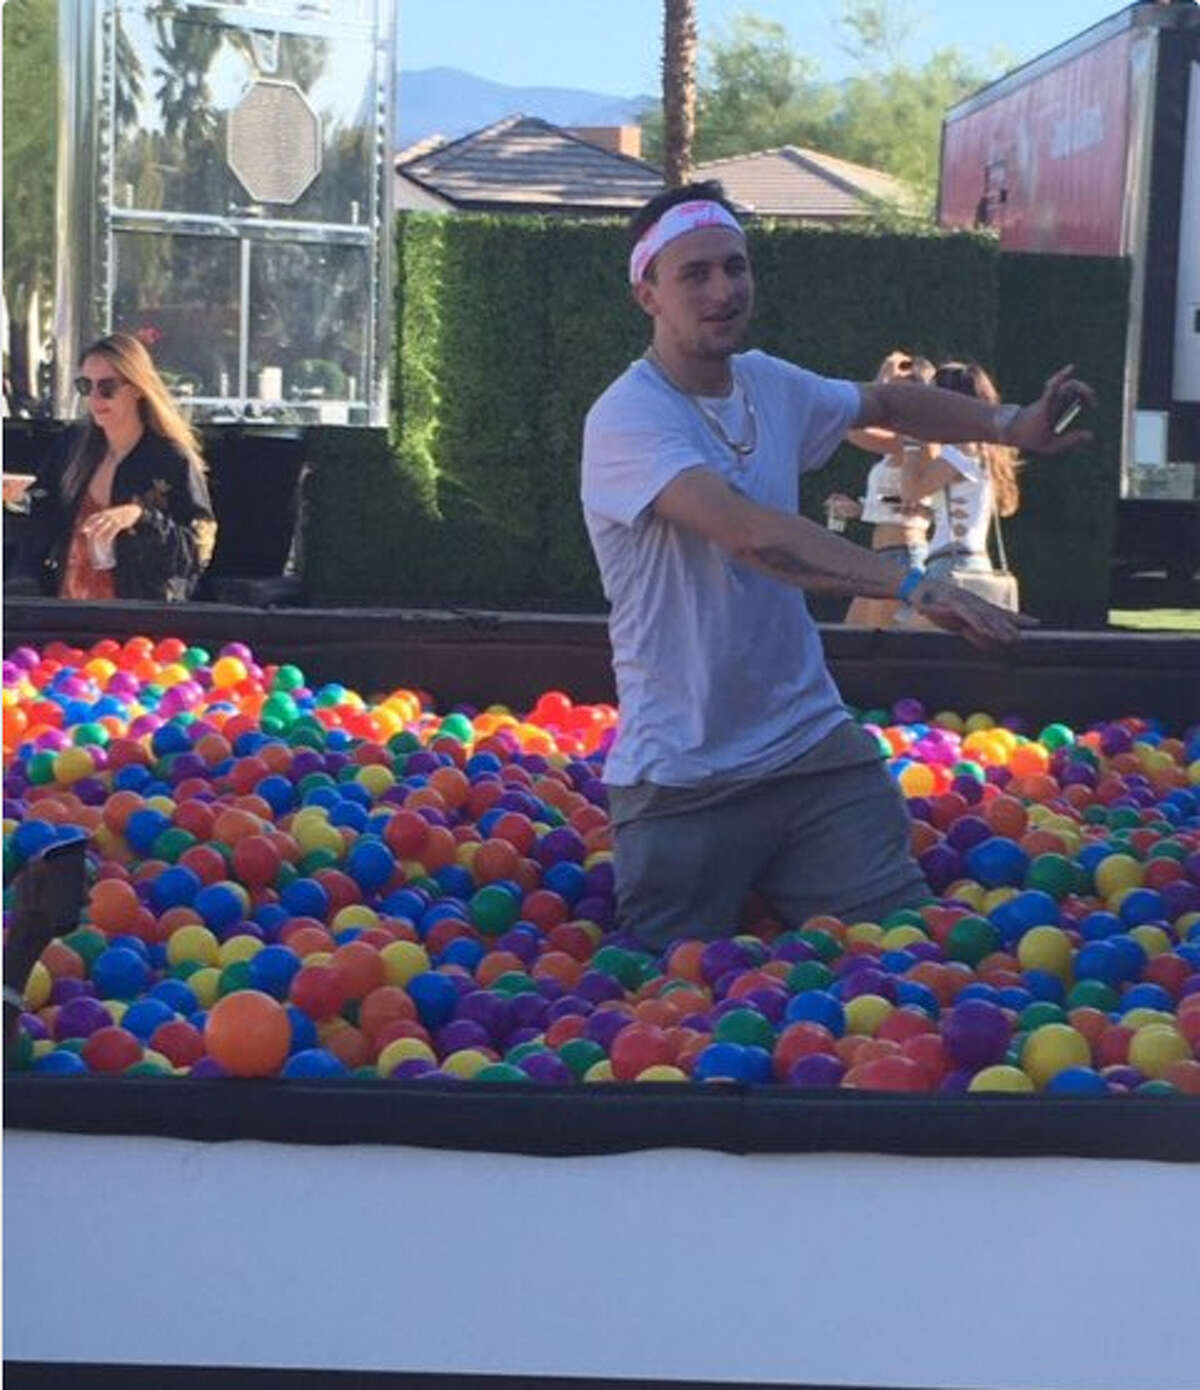 Johnny Manziel dances in a ball pit at Coachella over the weekend.